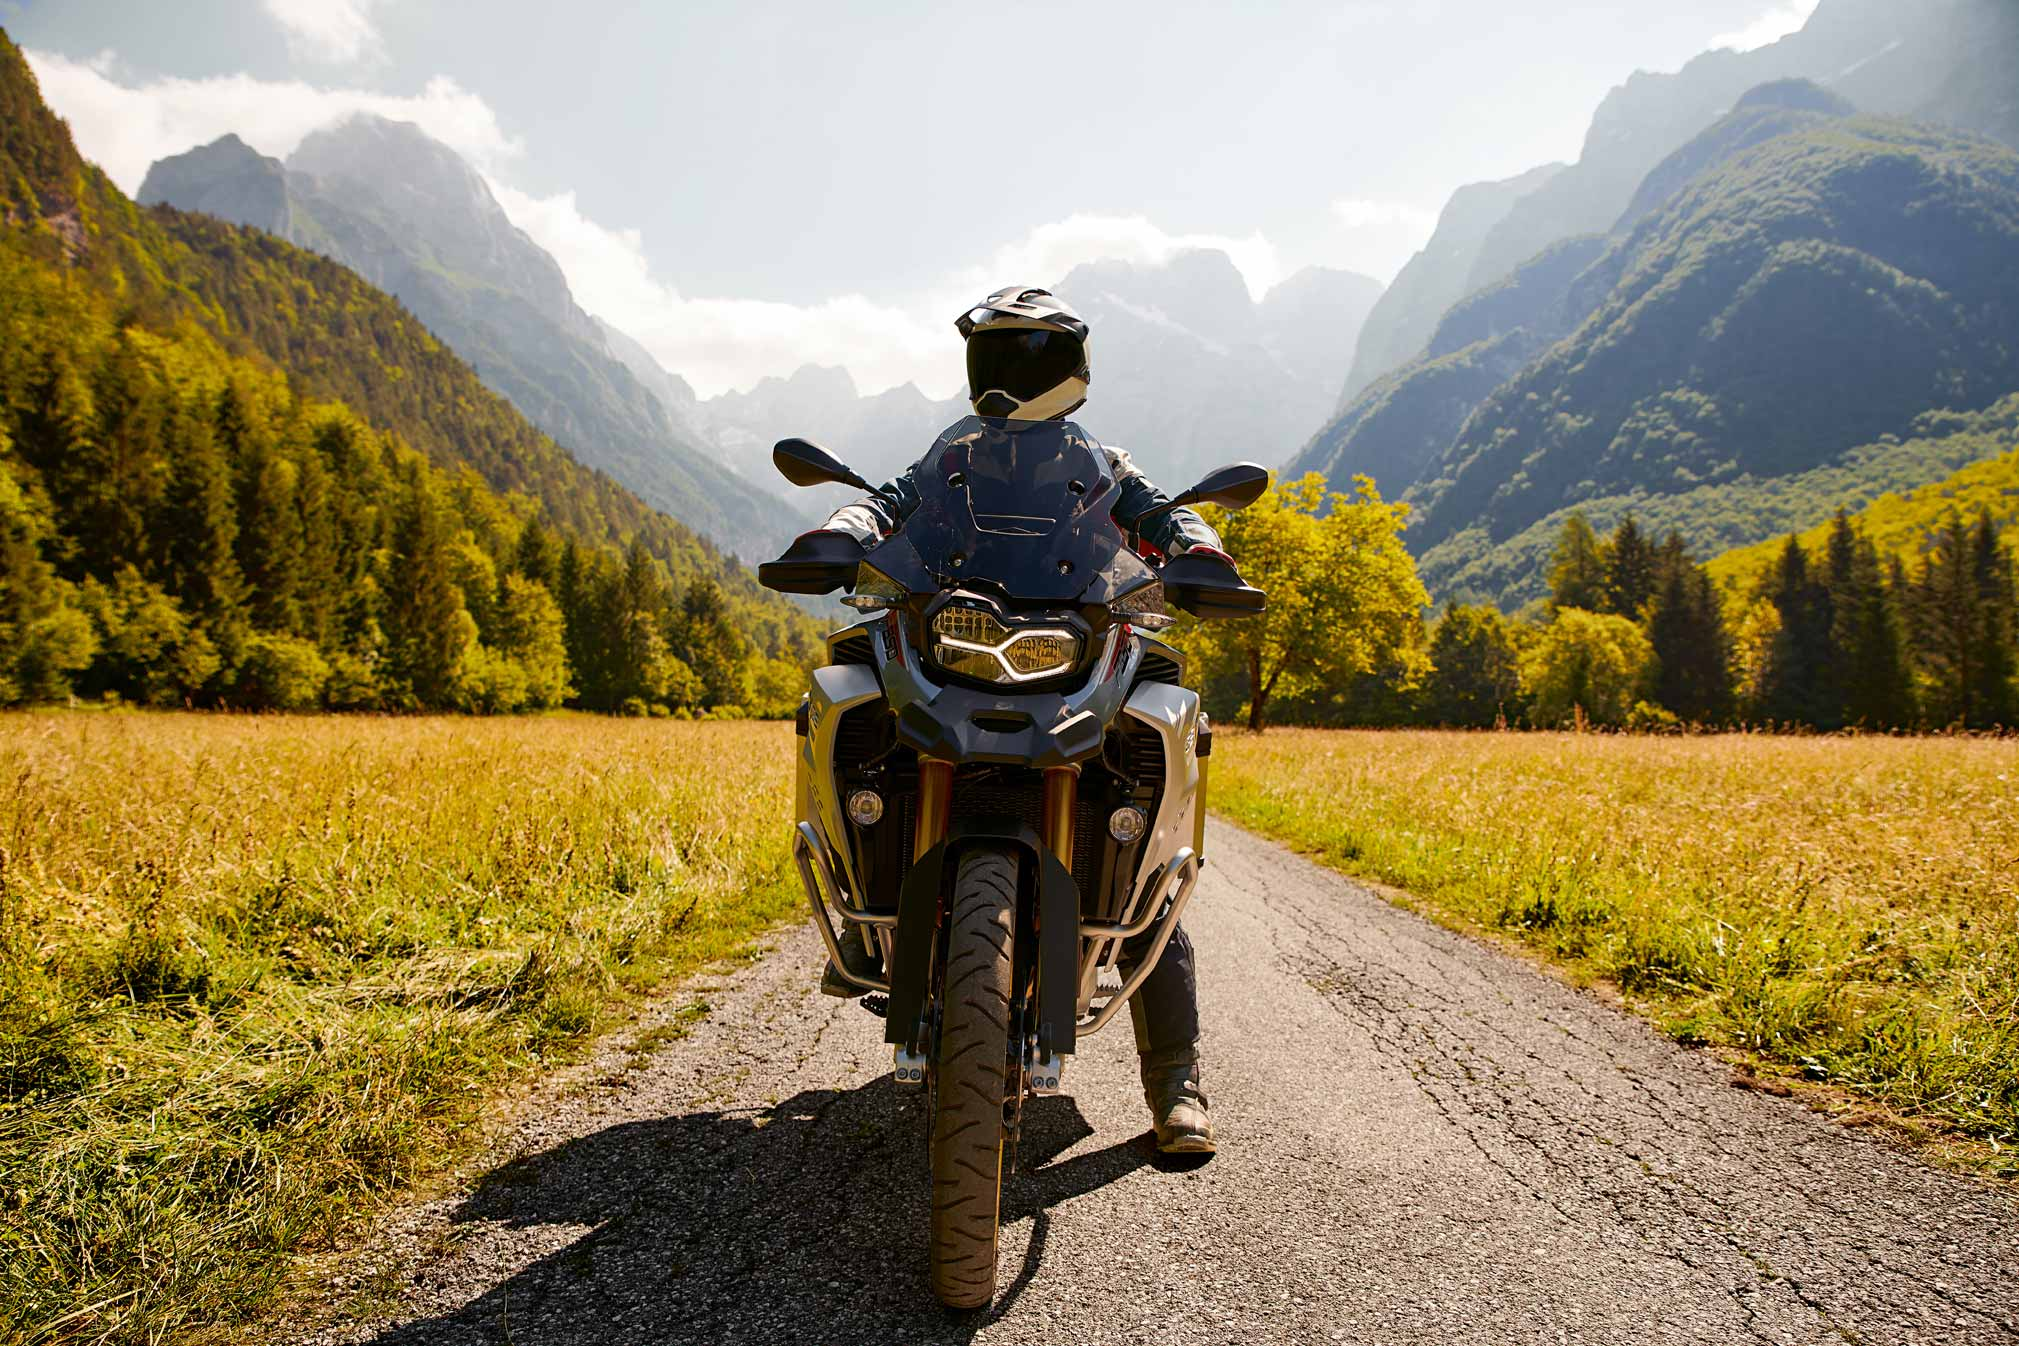 2019 BMW F850GS Adventure Guide • Total Motorcycle